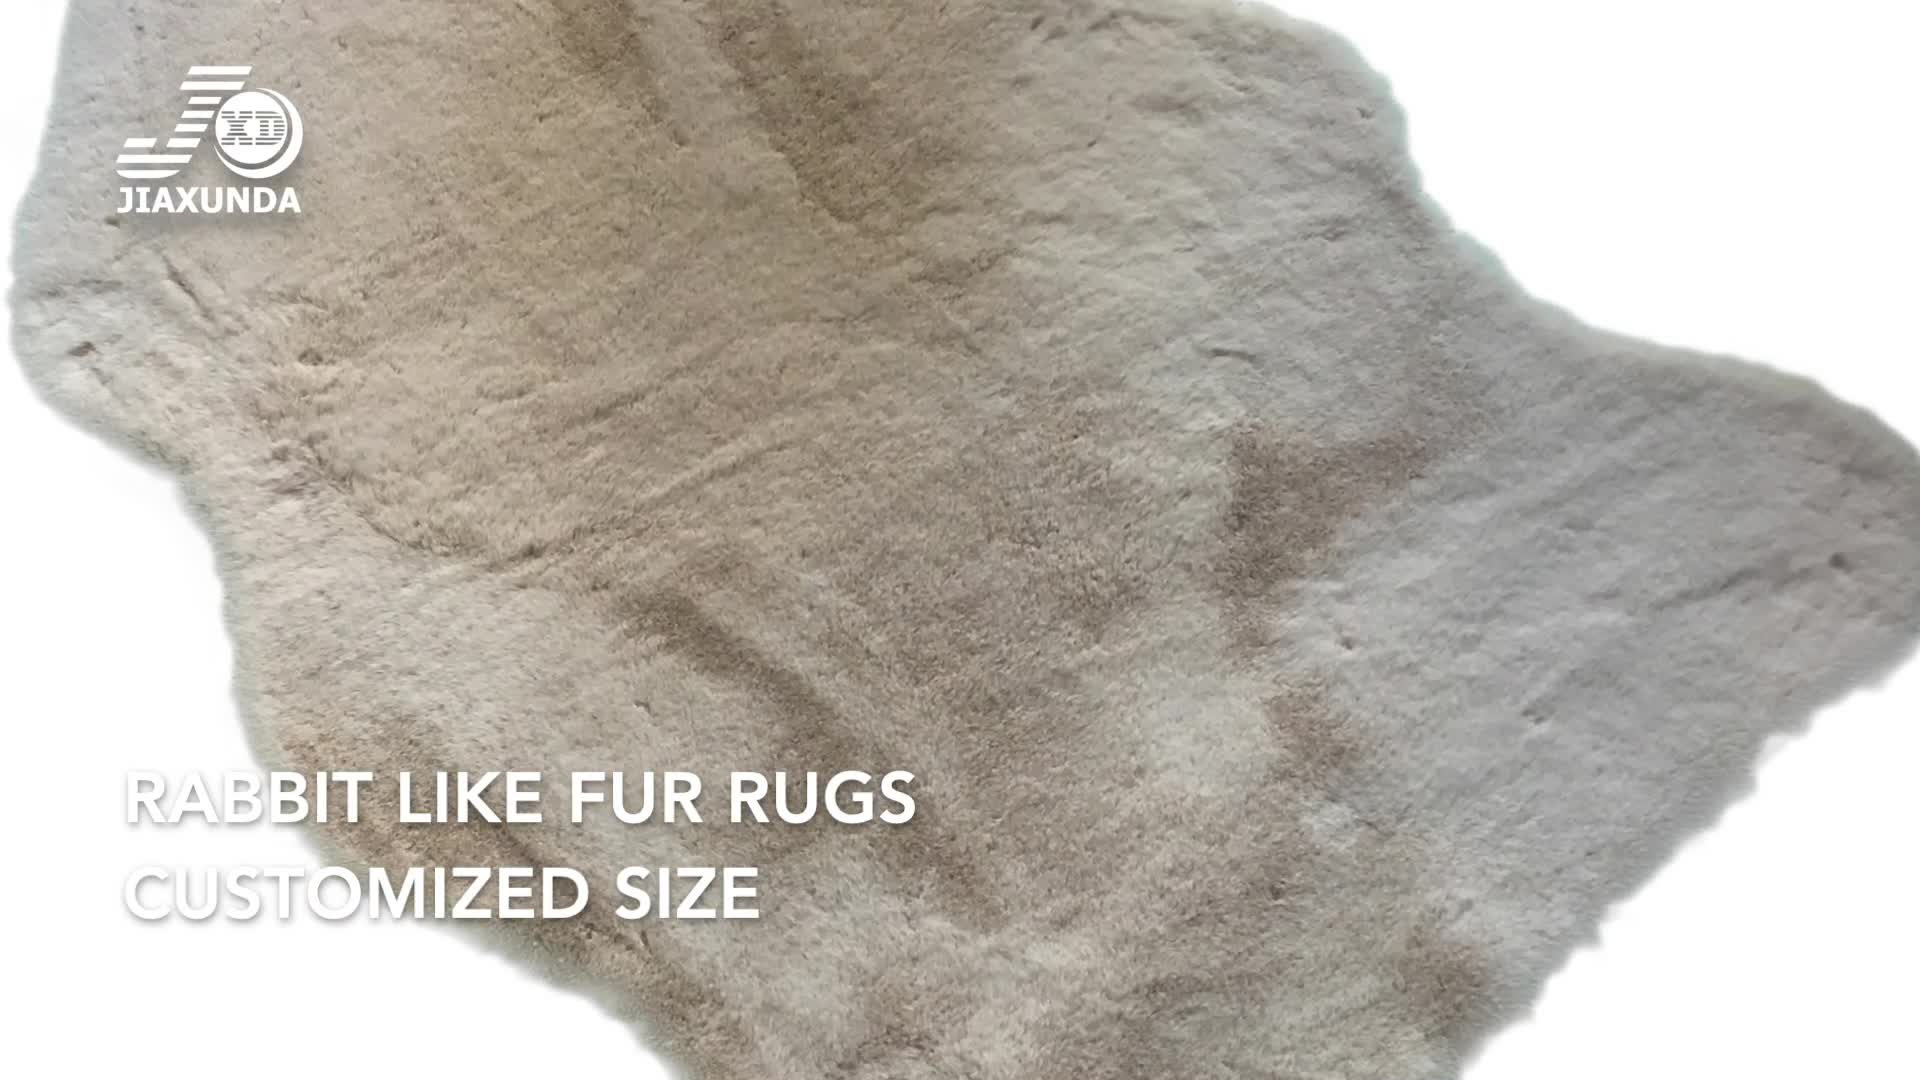 Handmade Faux Rabbit Fur Style Anti-Skid Safe and Hypoallergenic for Home Decoration Shag Area Rugs,